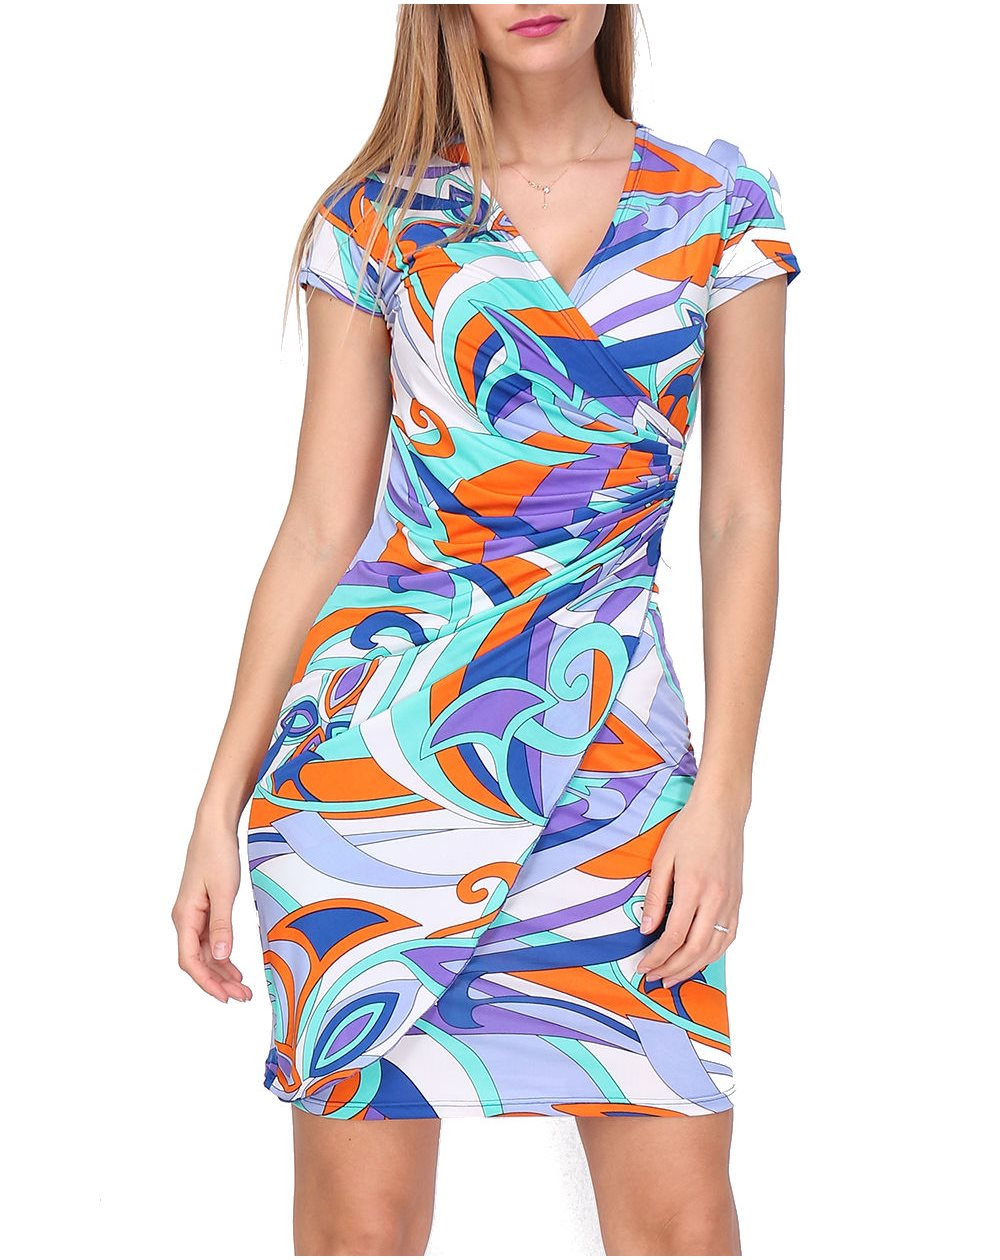 Revdelle - Robe Made in France cache coeur col V Violet manches courtes Femme Taille S M L XL CAMILLE